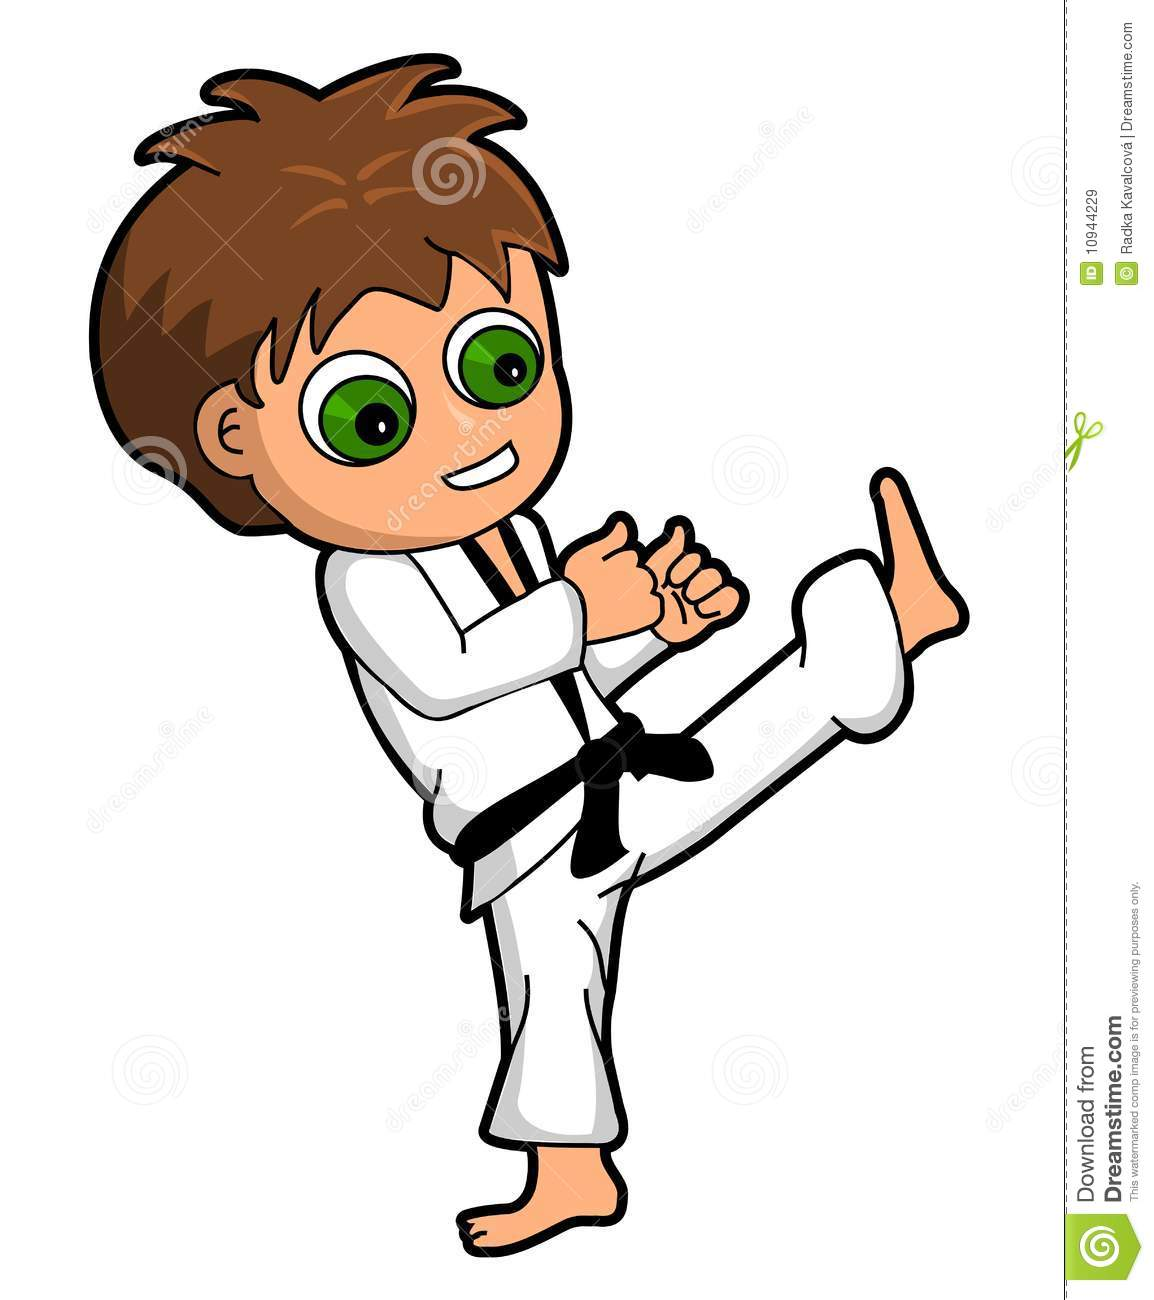 Pi Clipart At Free For Personal Use Of Electronic Circuit Crossing Symbol Clip Art Clkercom Vector 1154x1300 Top 60 Karate